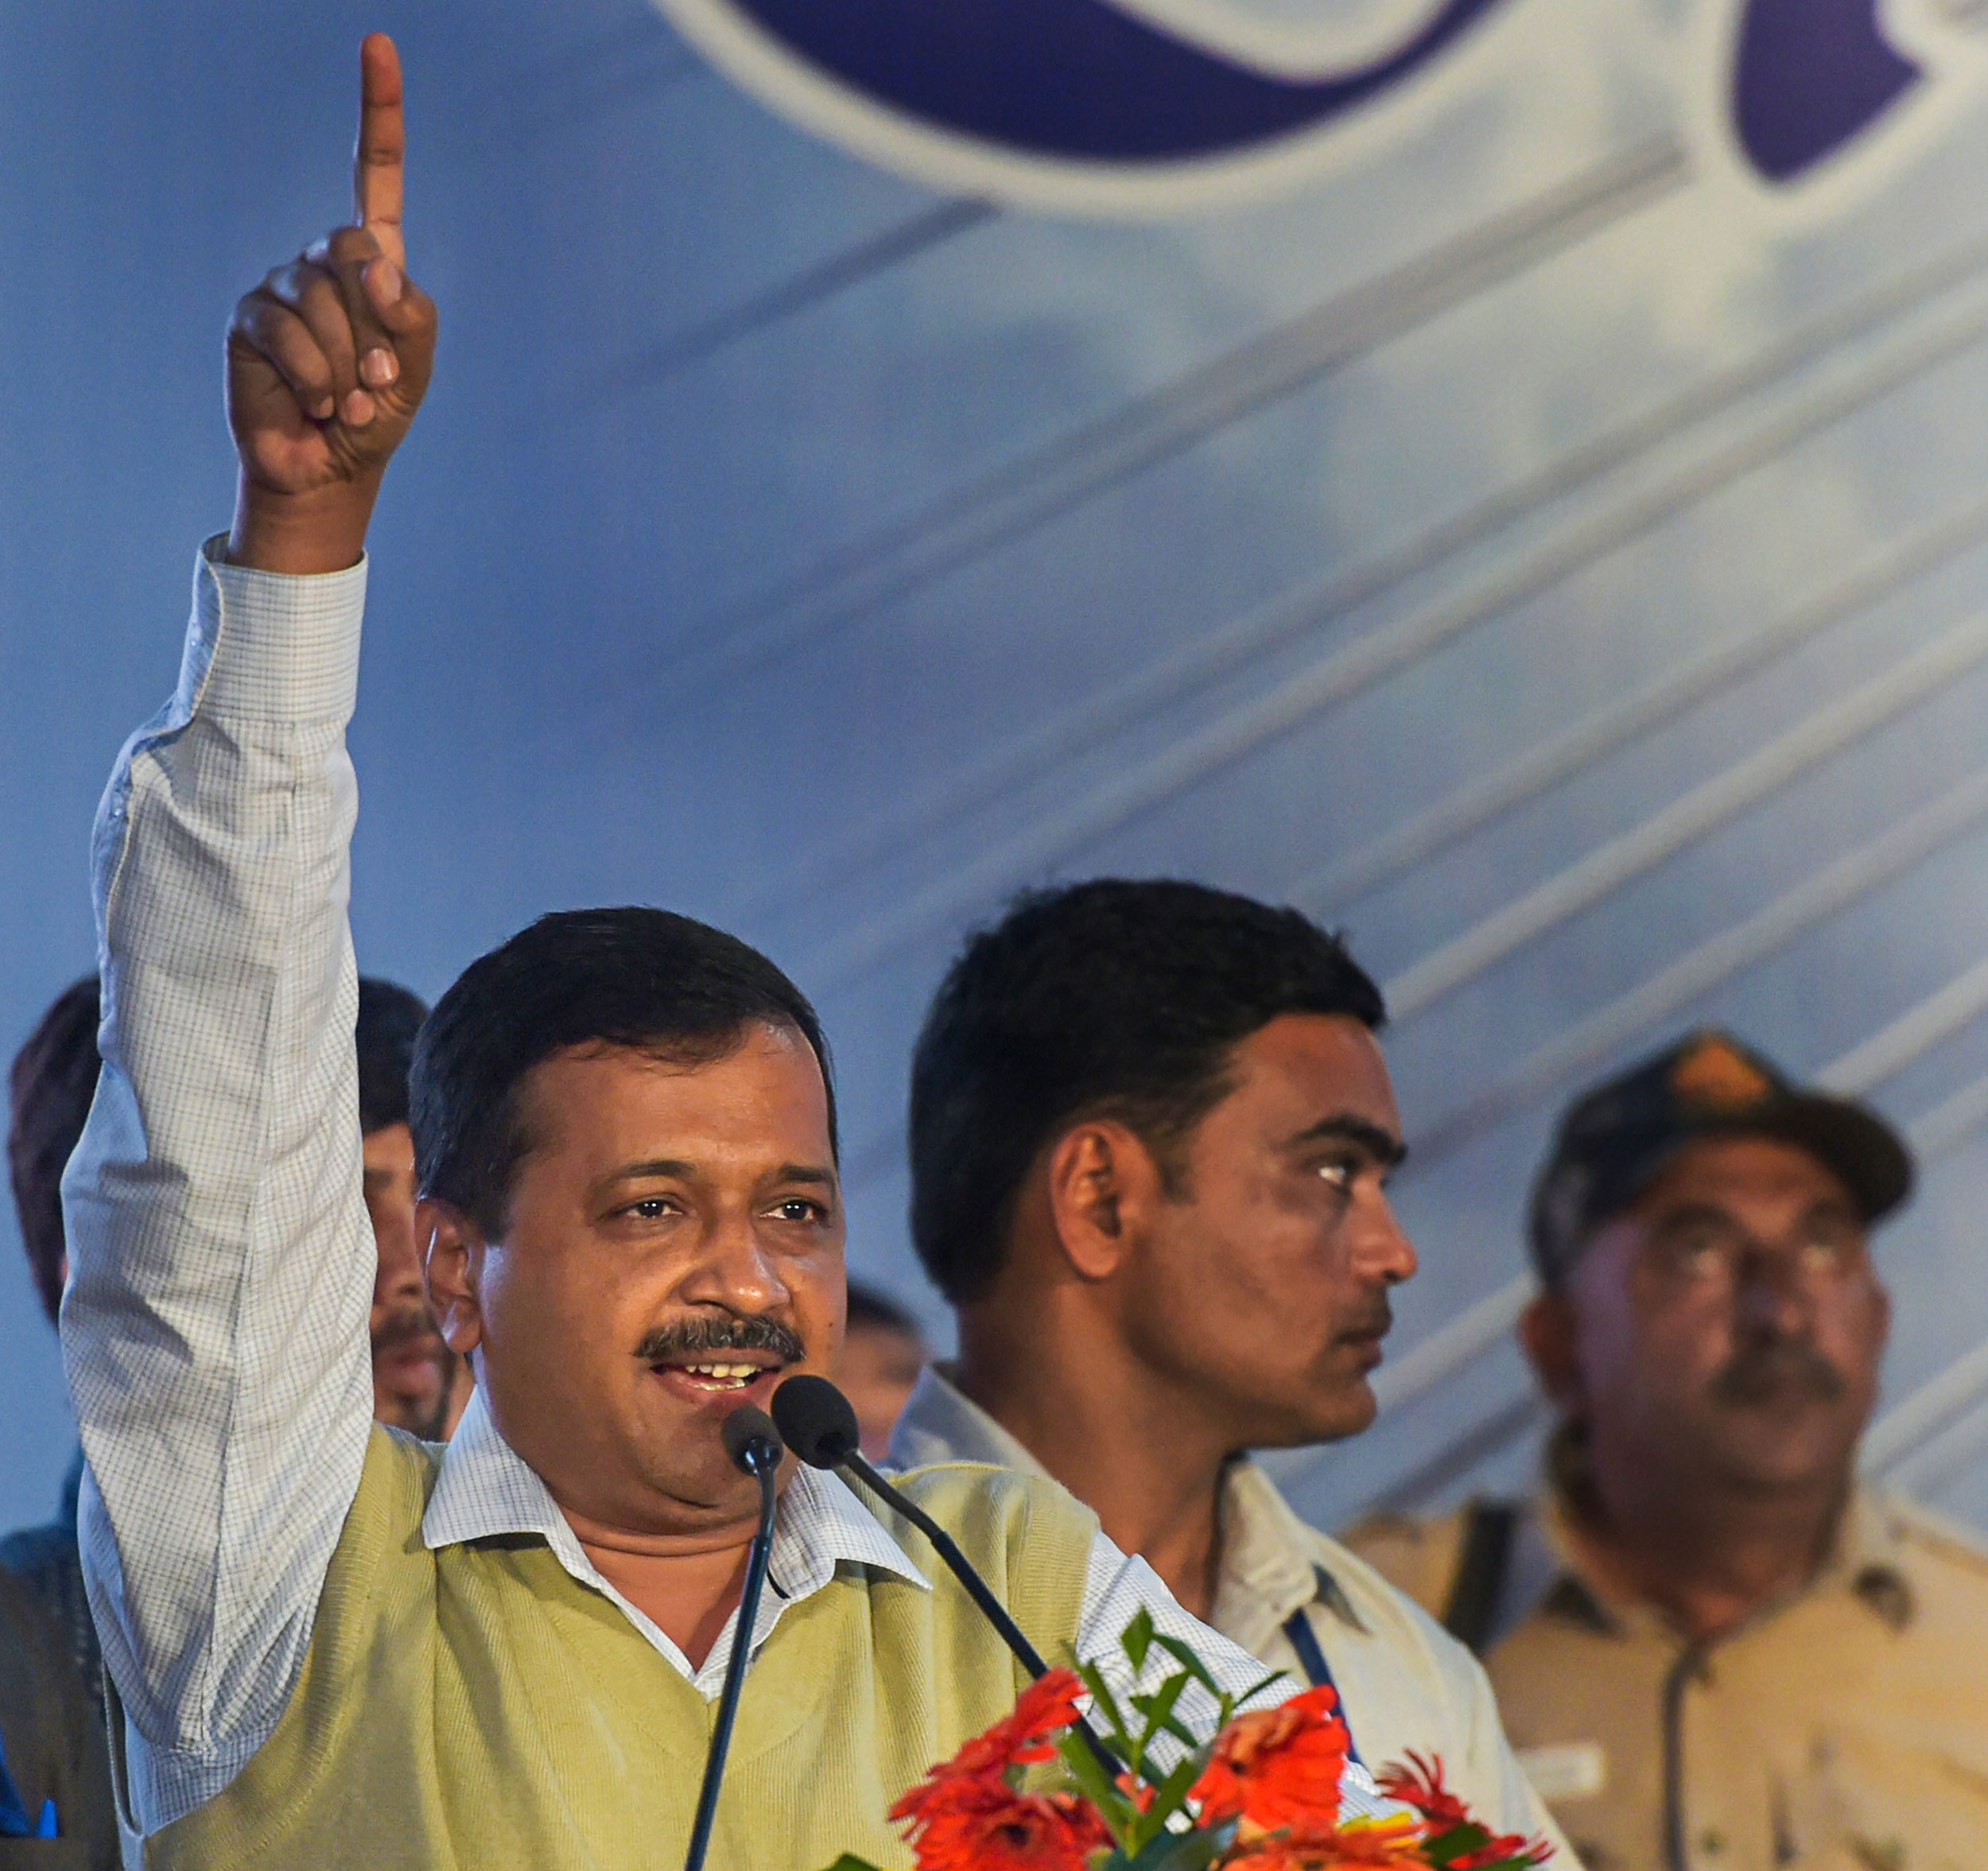 Arvind Kejriwal after the inauguration of the Signature Bridge on the Yamuna river, at Wazirabad in New Delhi, on Sunday.